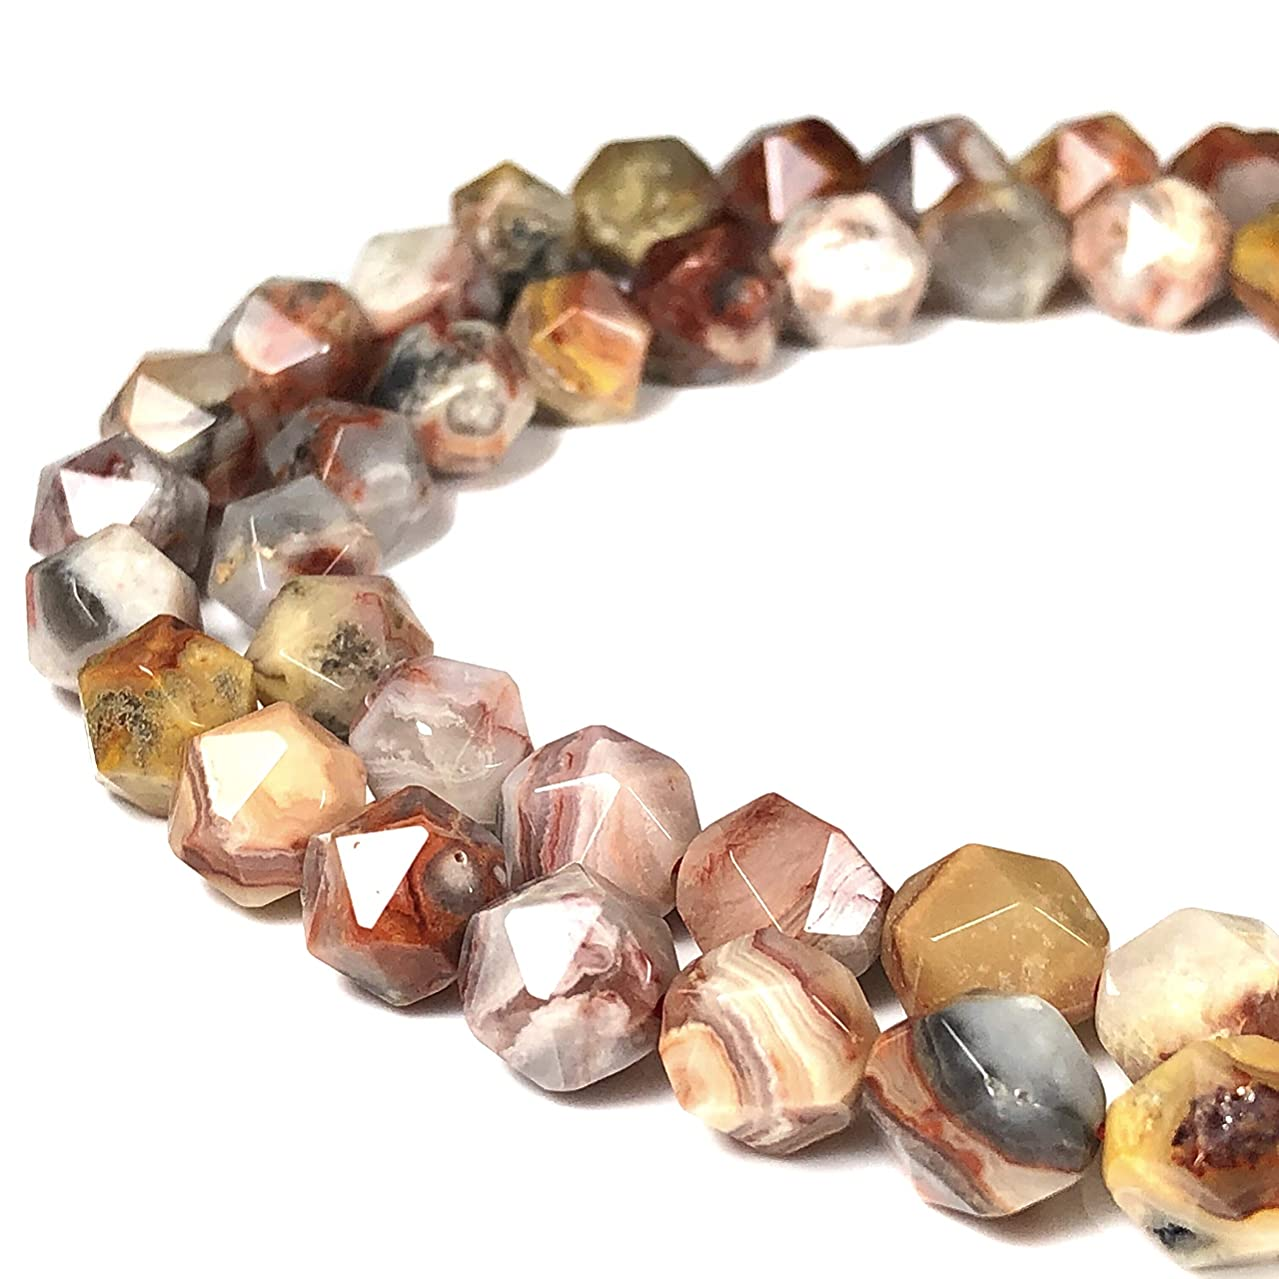 [ABCgems] Mexican Red Crazy Lace Agate 8mm Precision-Star-Cut Beads for Beading & Jewelry Making